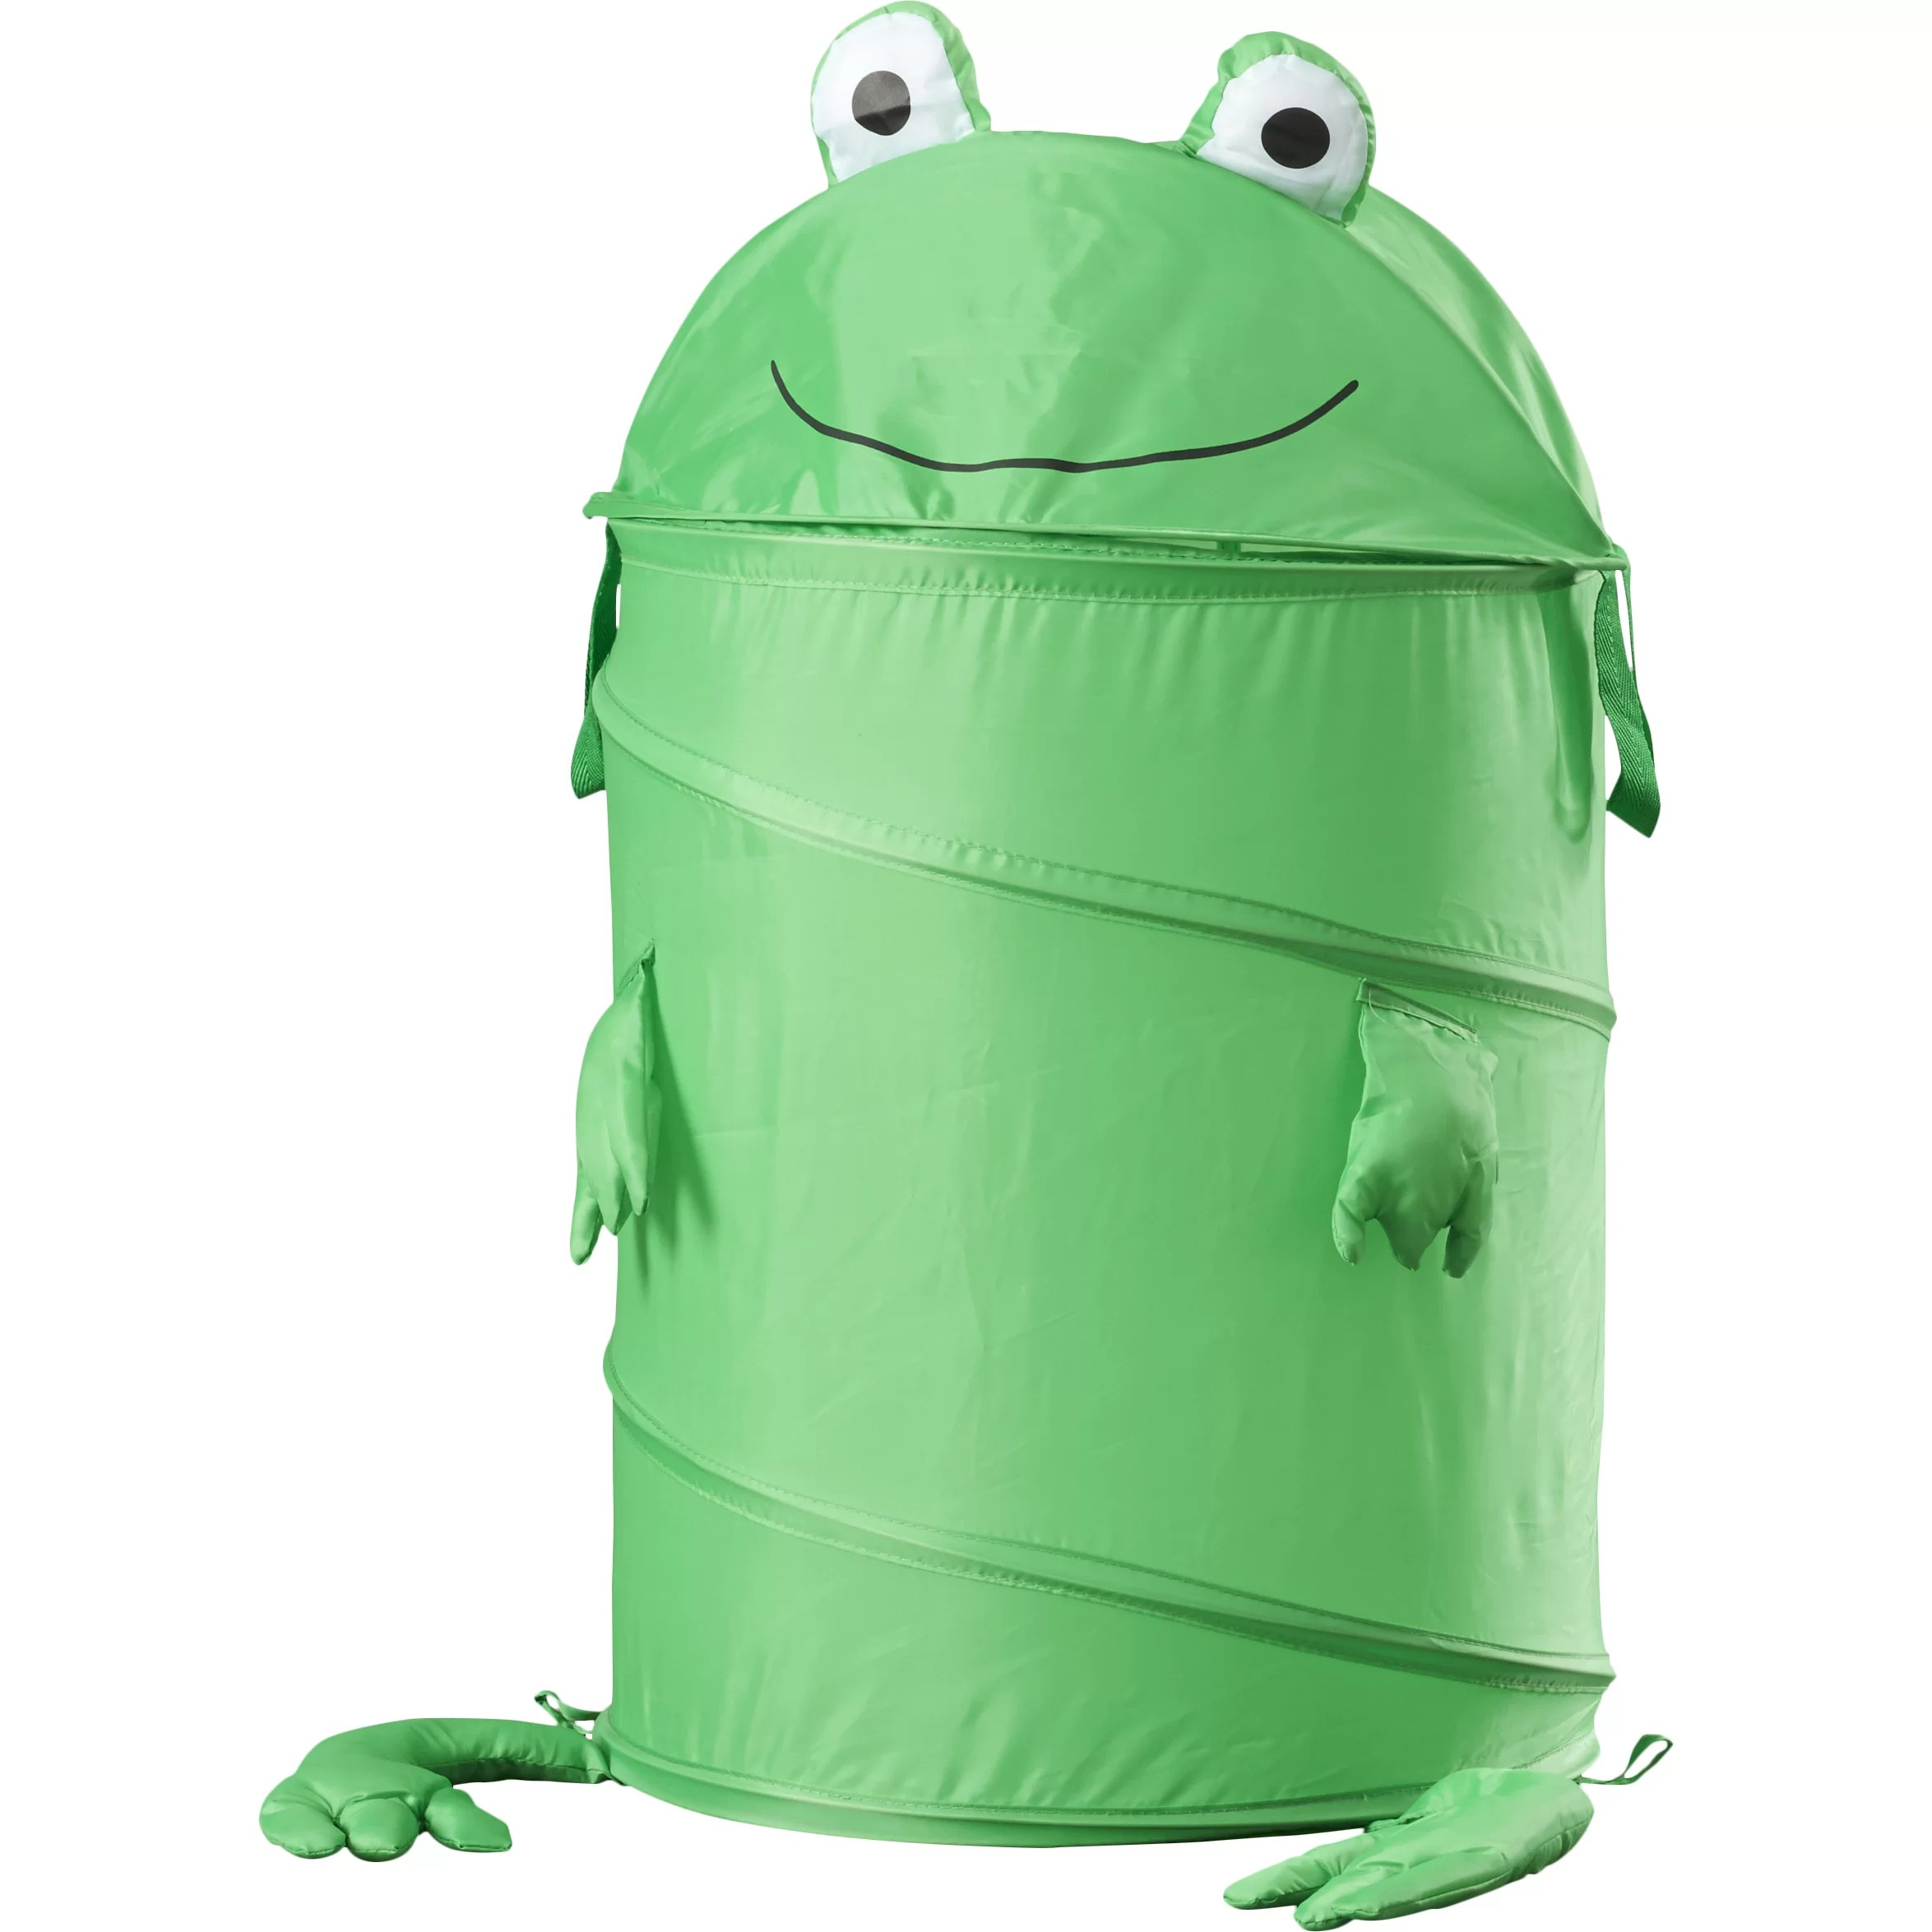 Kids Clothes Hamper Zoomie Kids Large Kids Frog Pop Up Laundry Hamper